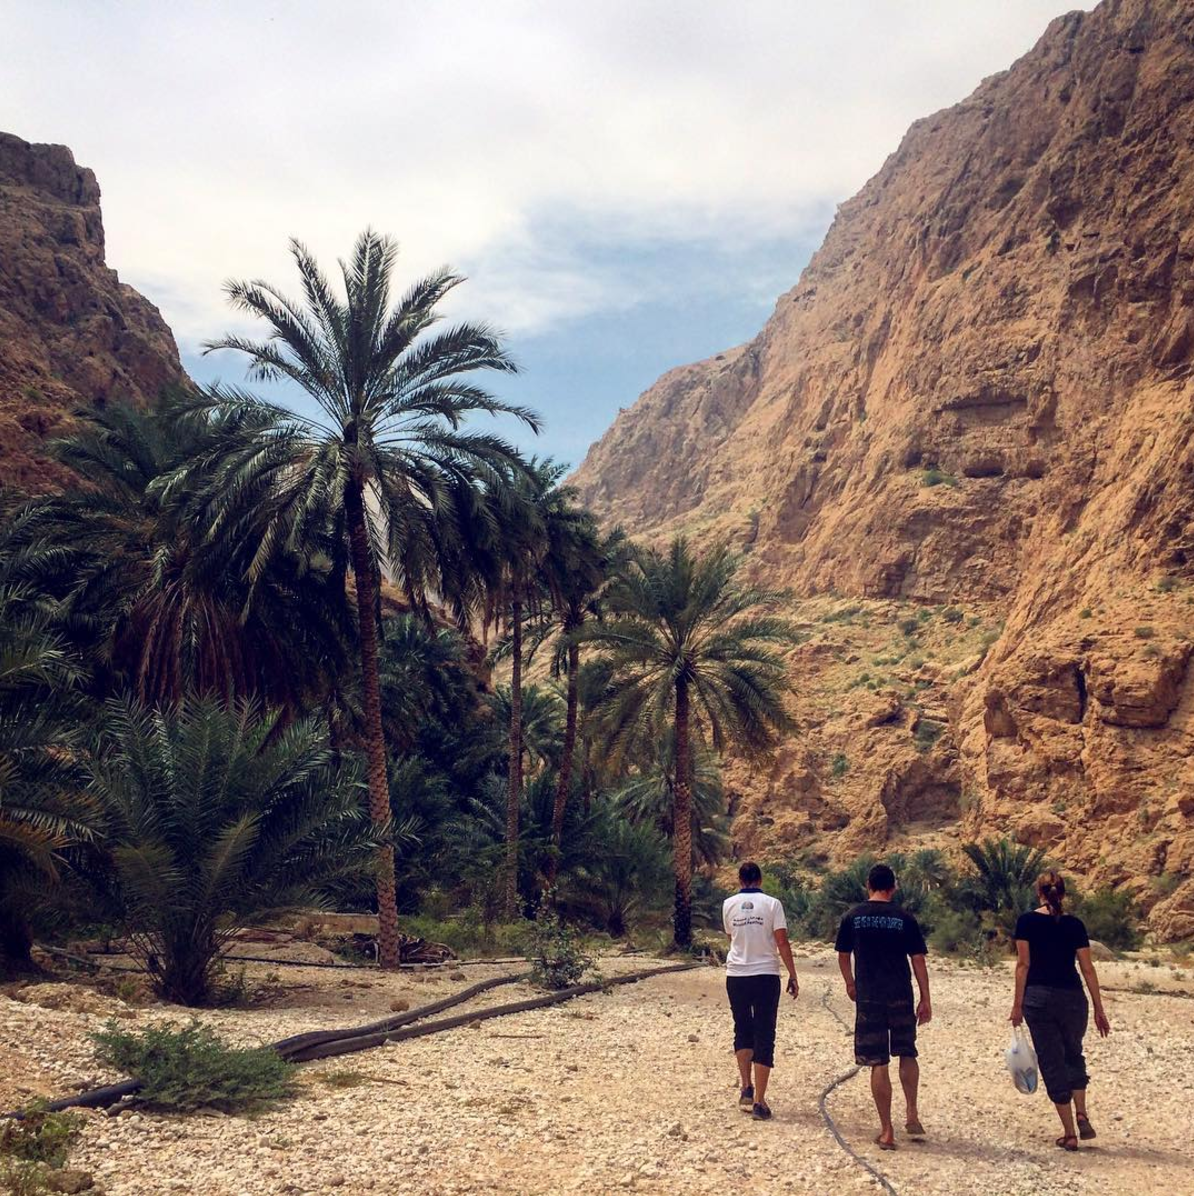 Walking through a wadi to the magical treasures within